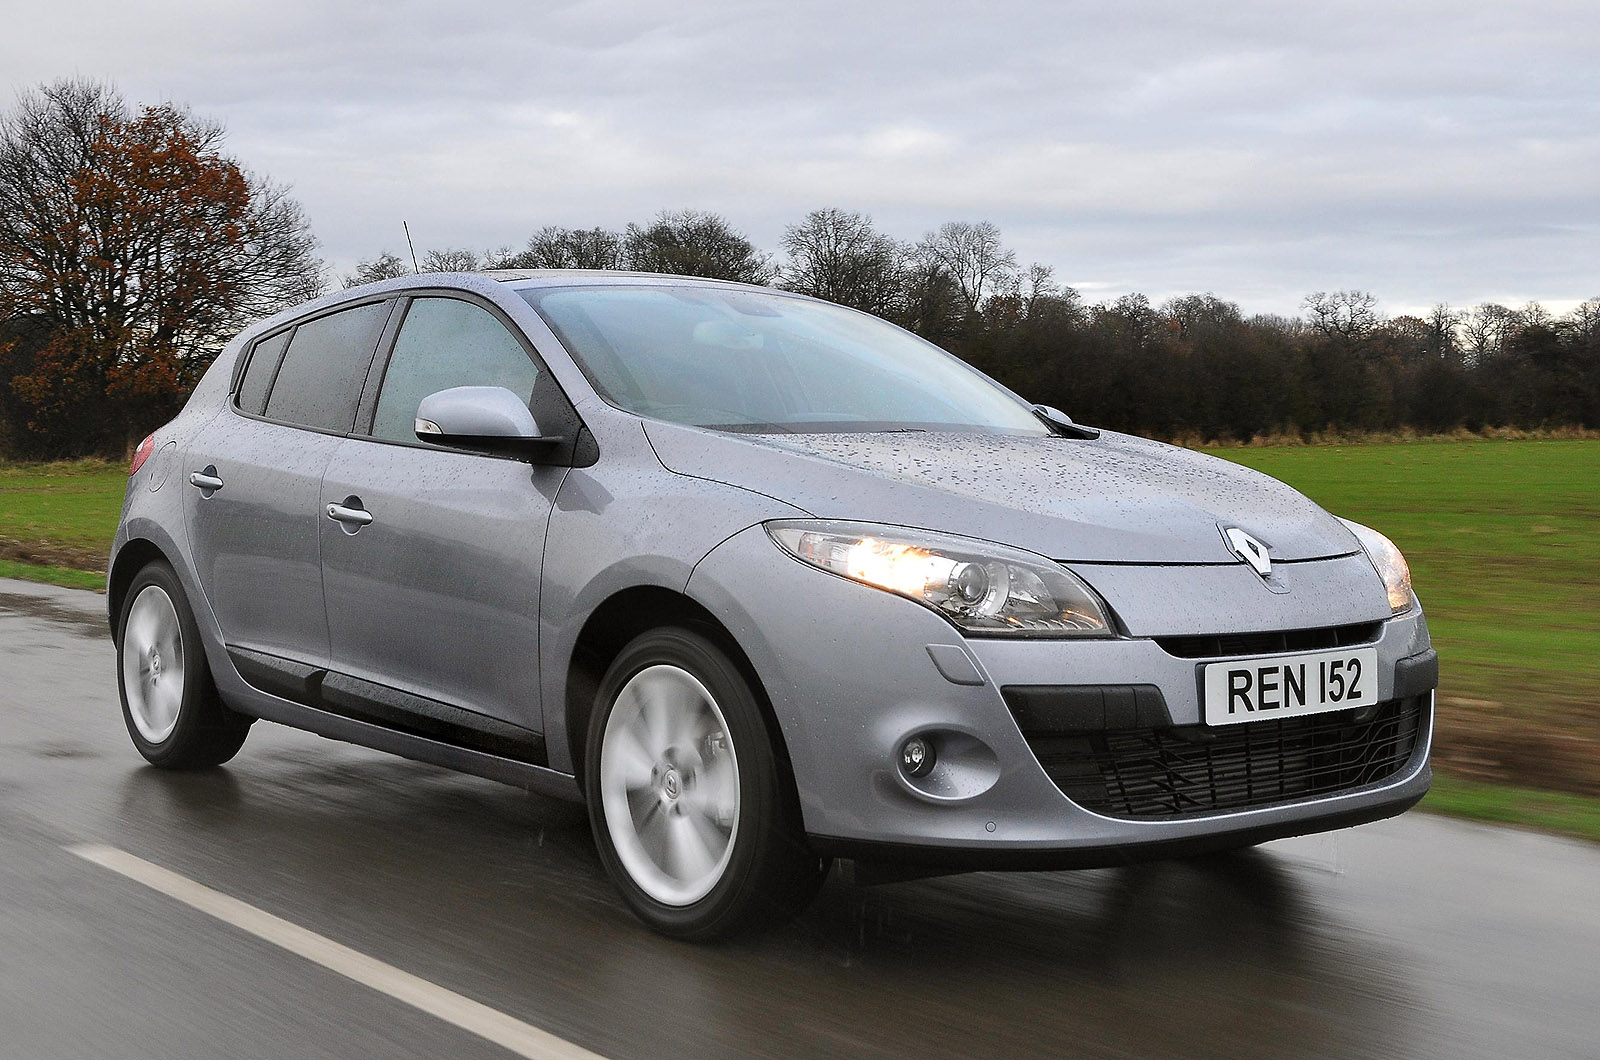 renault megane 1 4 tce 130 photos and comments